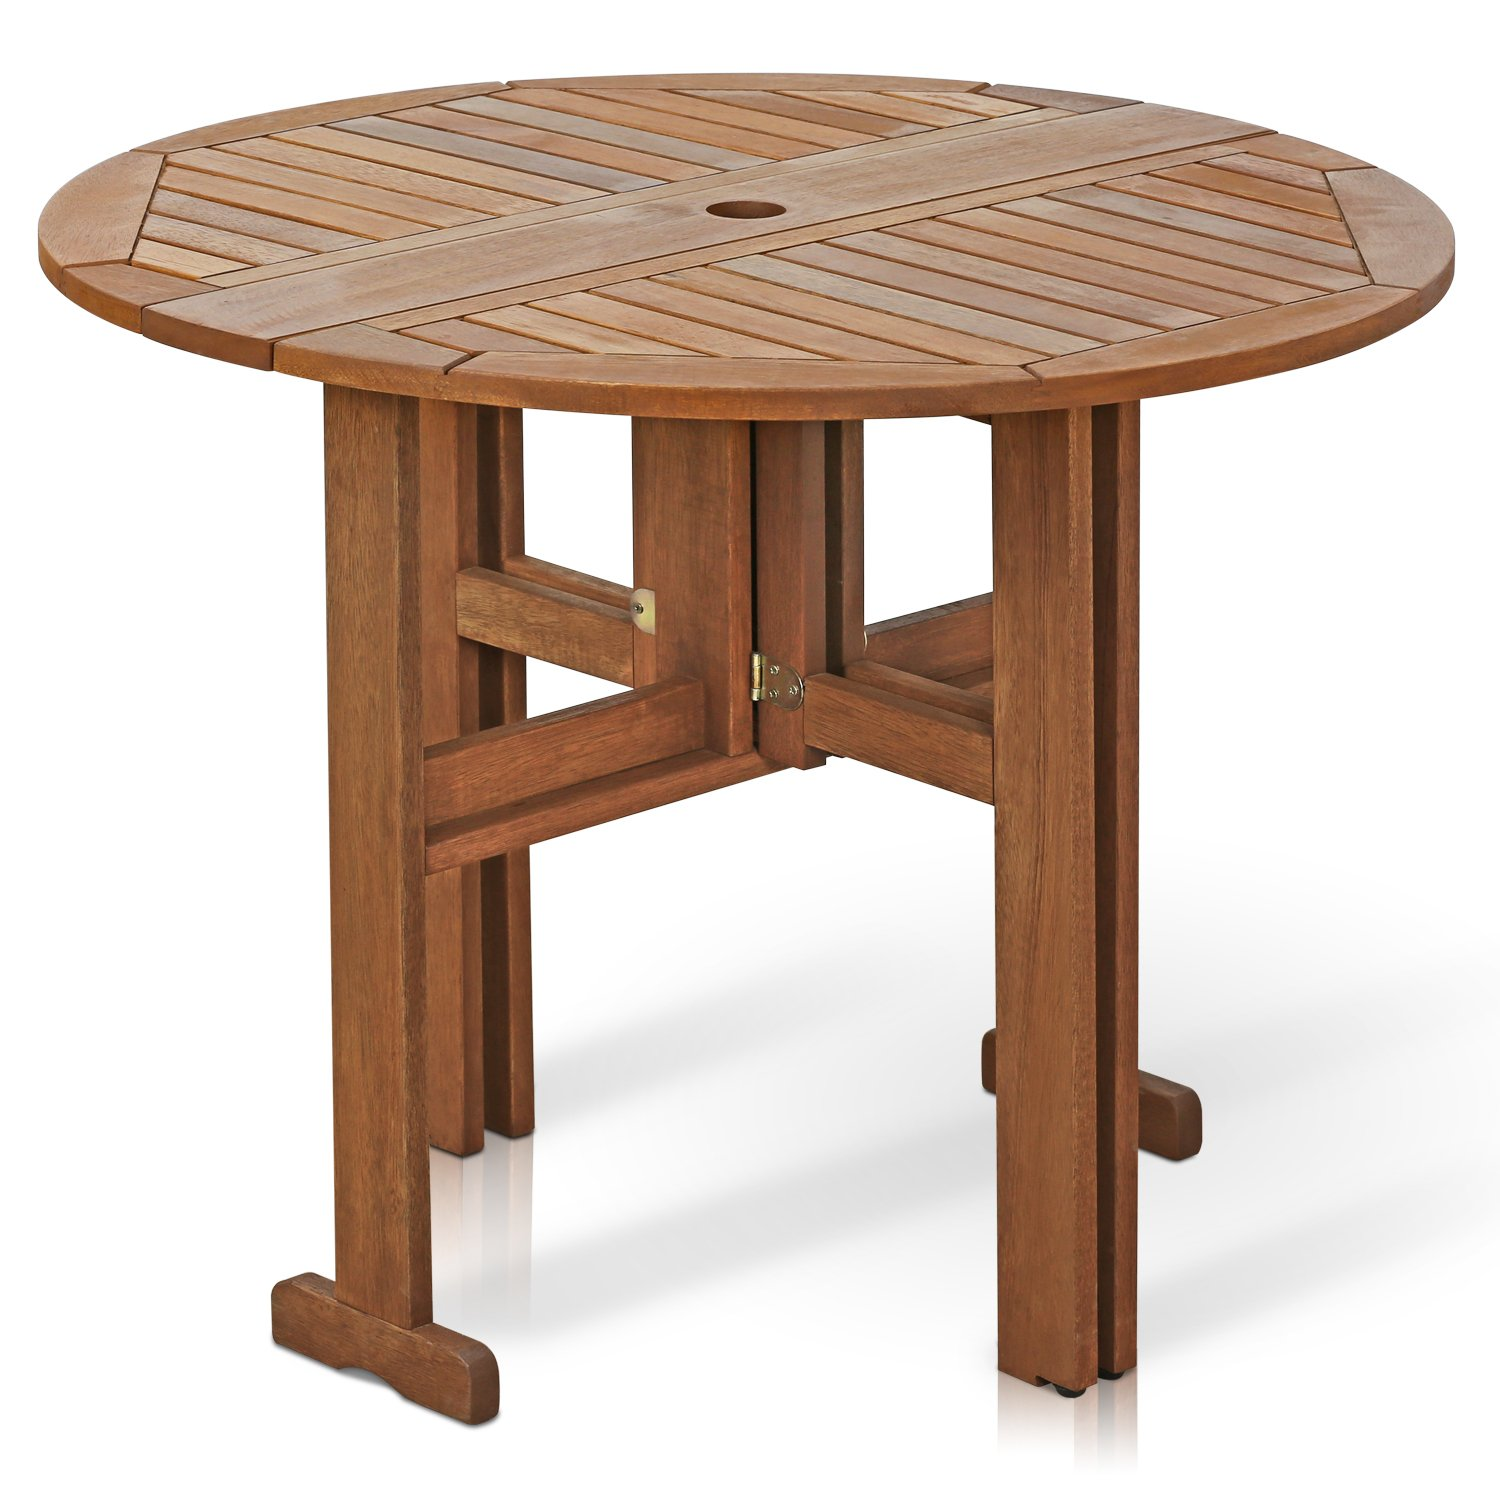 Cool Furinno Fg17035 Tioman Hardwood Patio Furniture Gateleg Best Image Libraries Weasiibadanjobscom